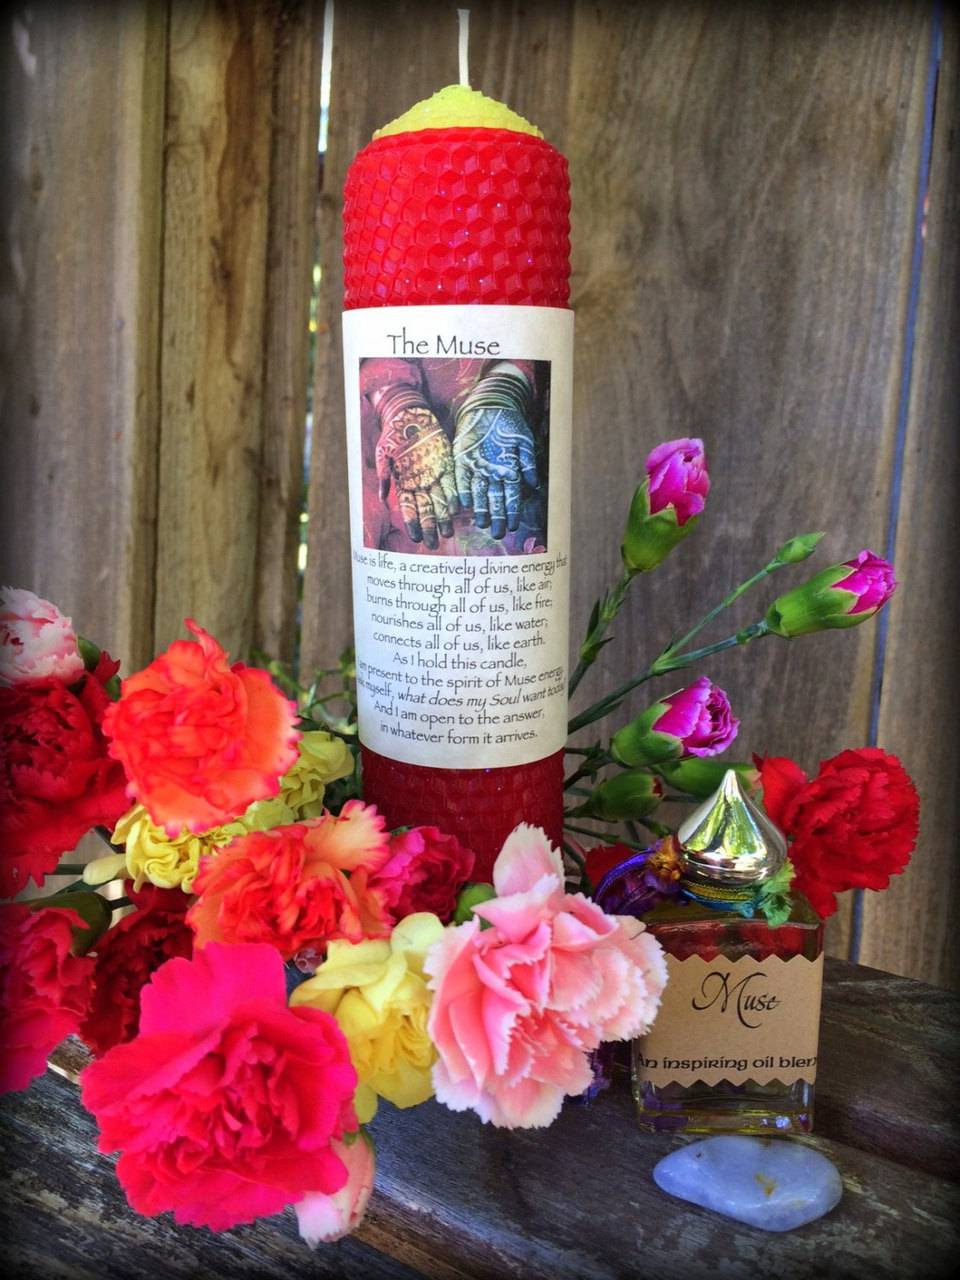 INVOKE YOUR MUSE Gift Set: Muse invocation candle